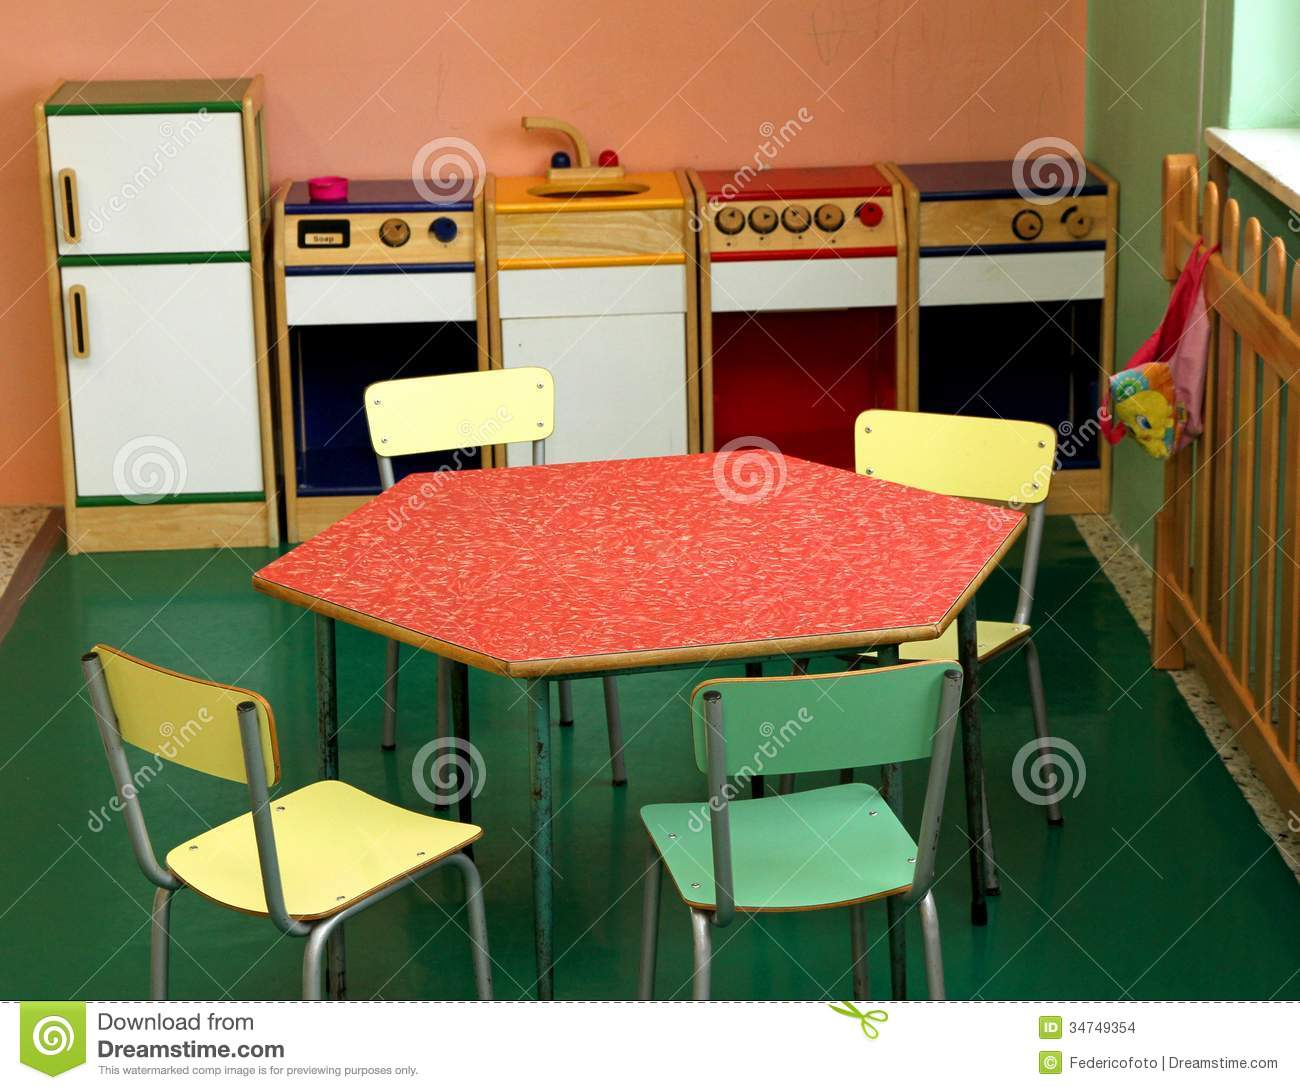 Toy kitchen and chairs to play in a nursery stock images for Play kitchen table